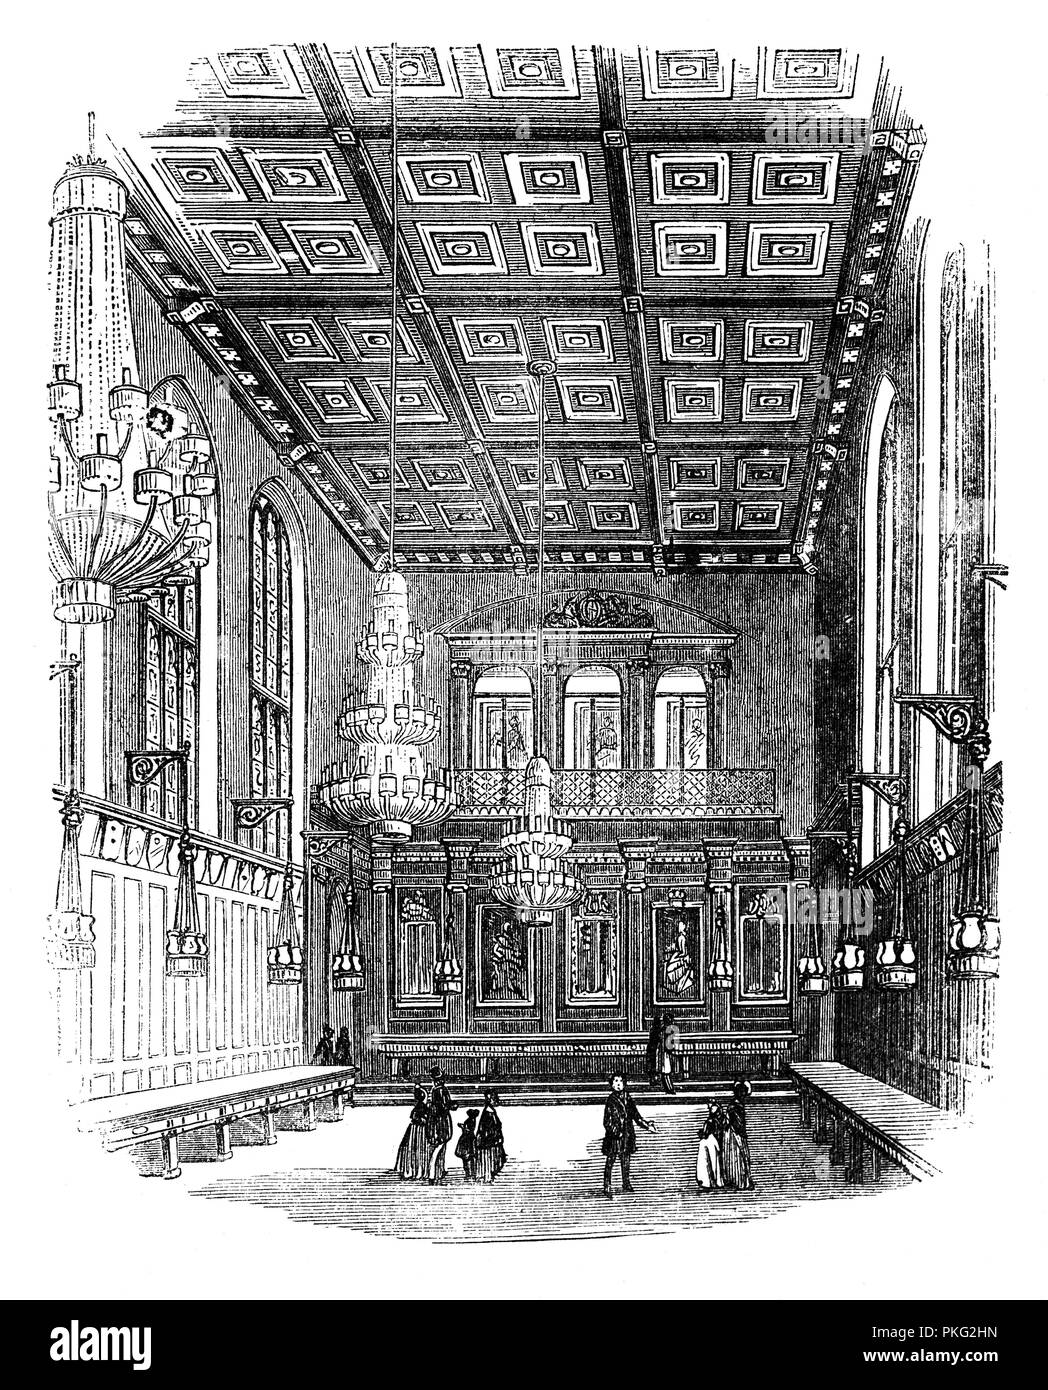 The Interior of Merchant Taylors' Hall, London is the seat of the Worshipful Company of Merchant Taylors, one of the Twelve Great Livery Companies of the City of London surviving from Mediaeval times. The first hall was built between Threadneedle Street and Cornhill at some date between the years 1347 and 1392. At the time of the Great Fire, only the walls and foundations survived, but the building was restored. - Stock Image